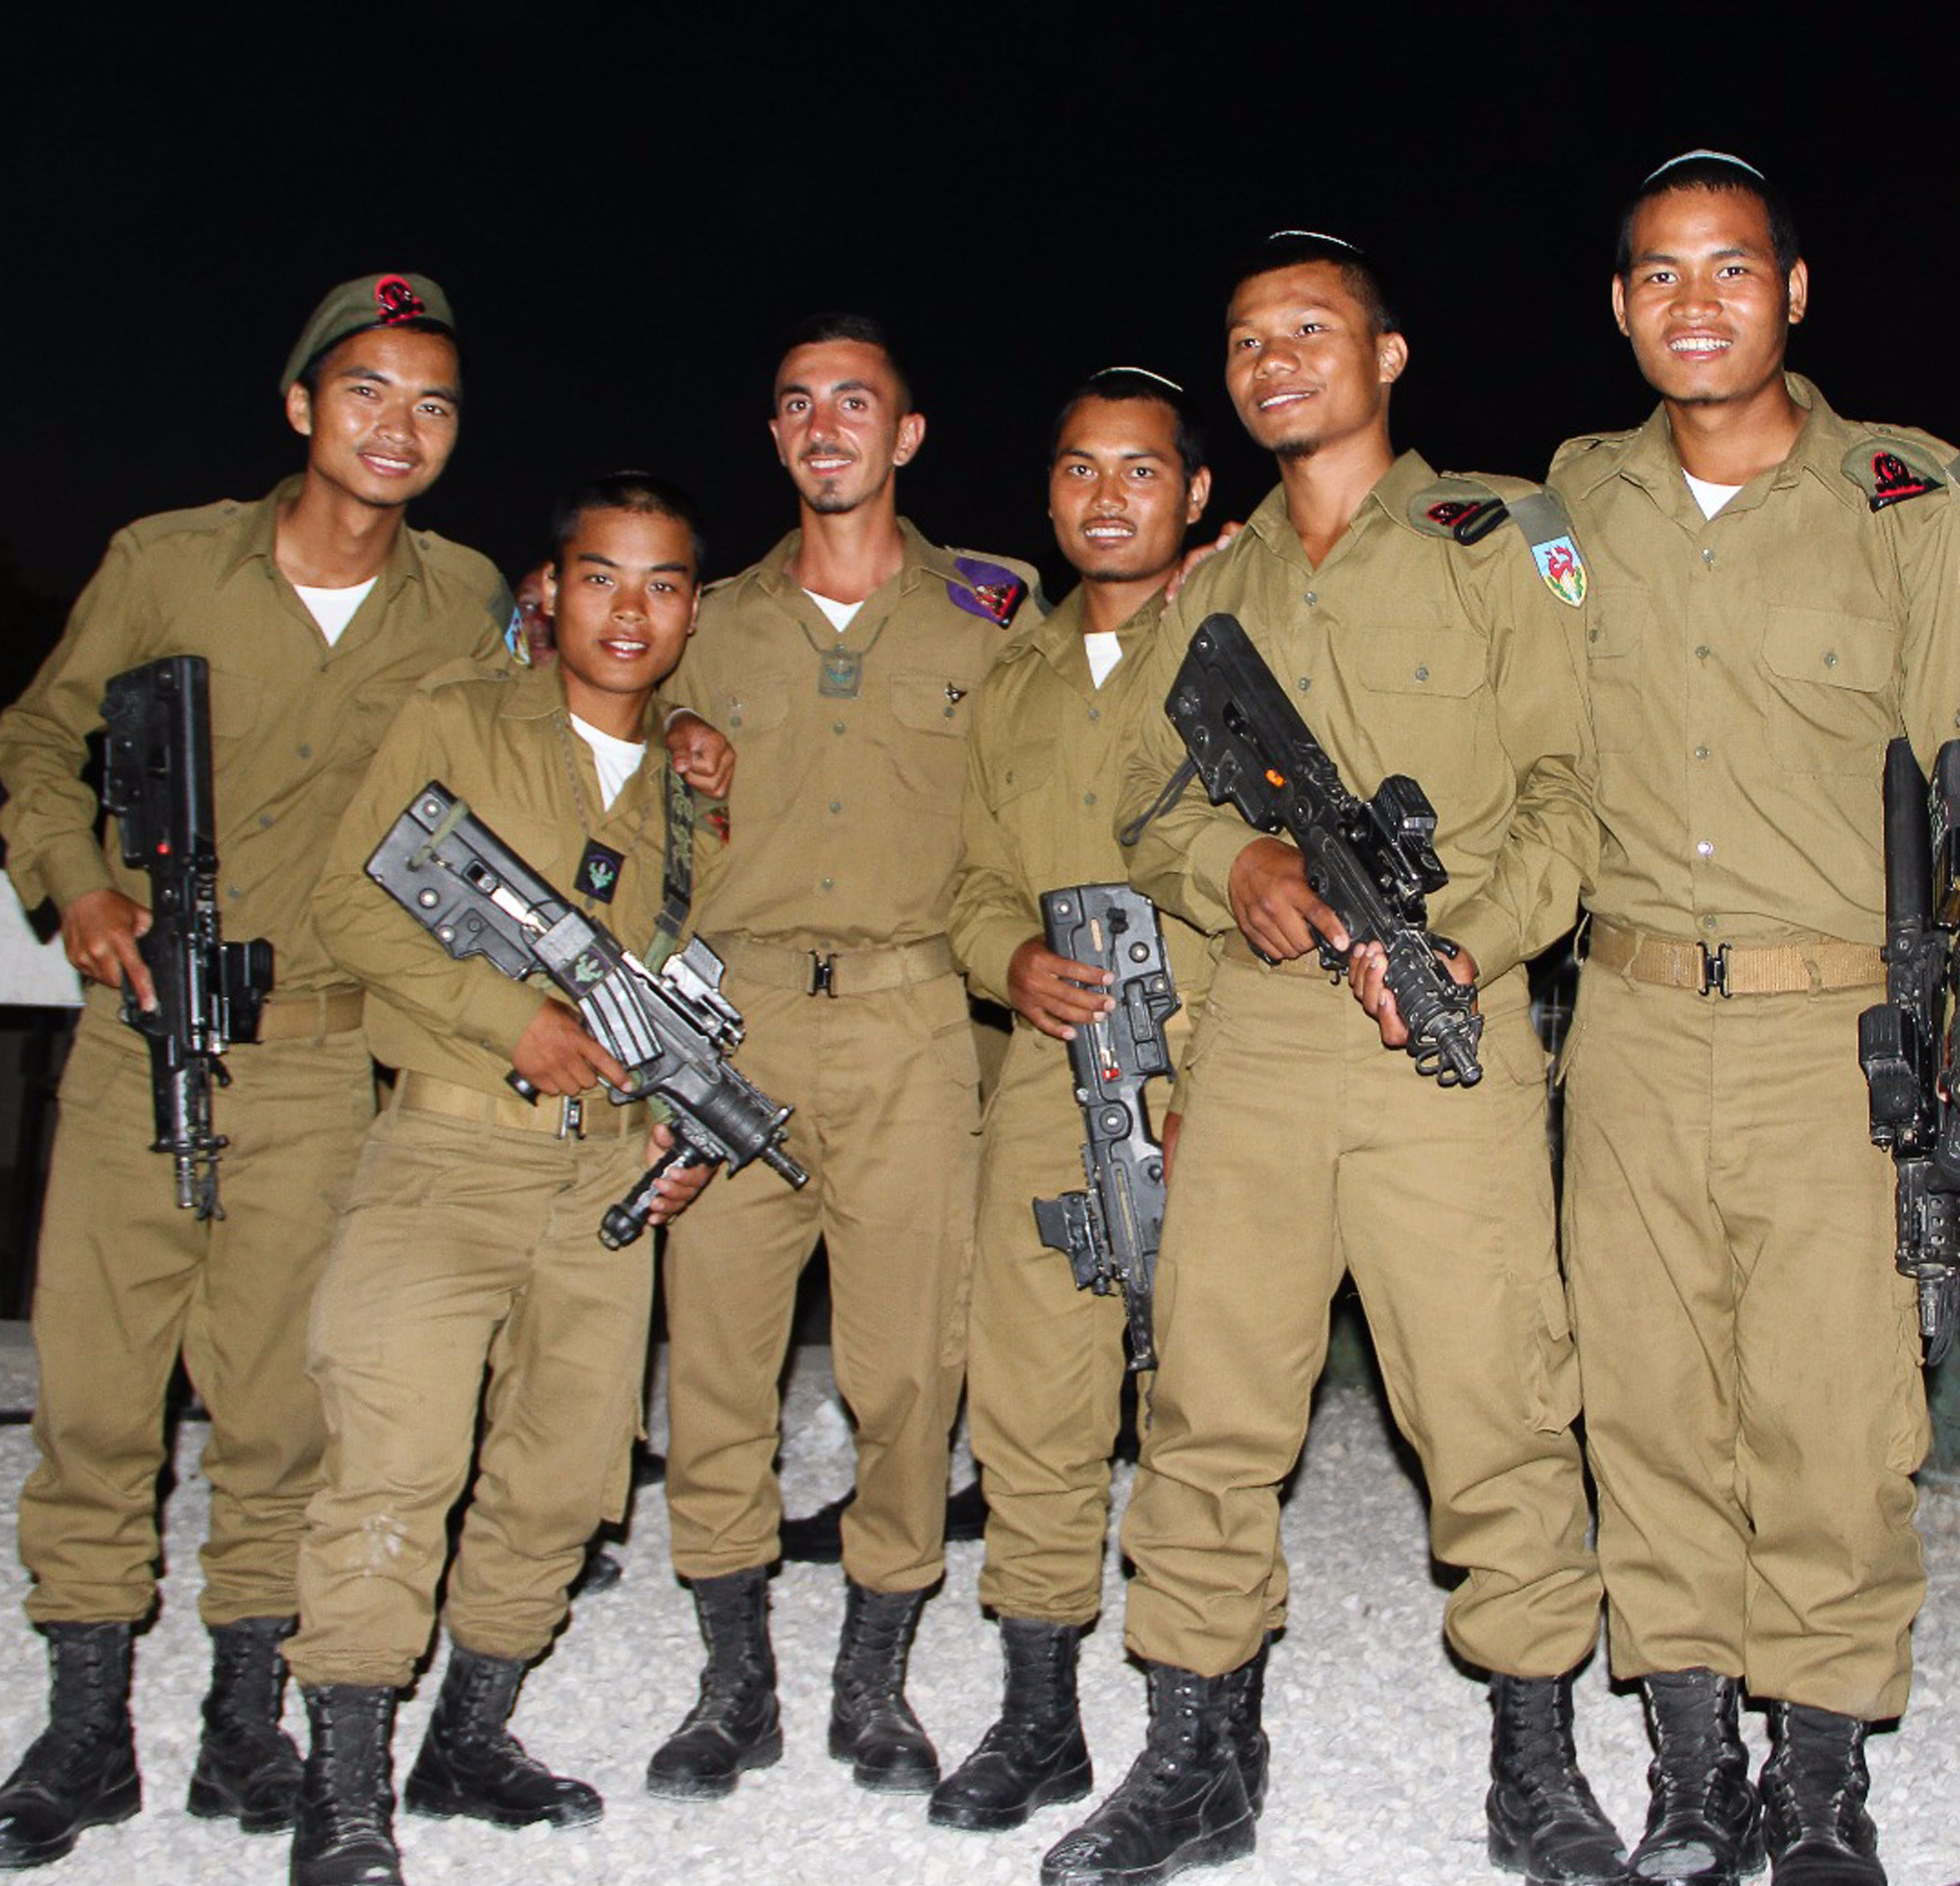 israel army inducts soldiers from indian lost tribe the forward